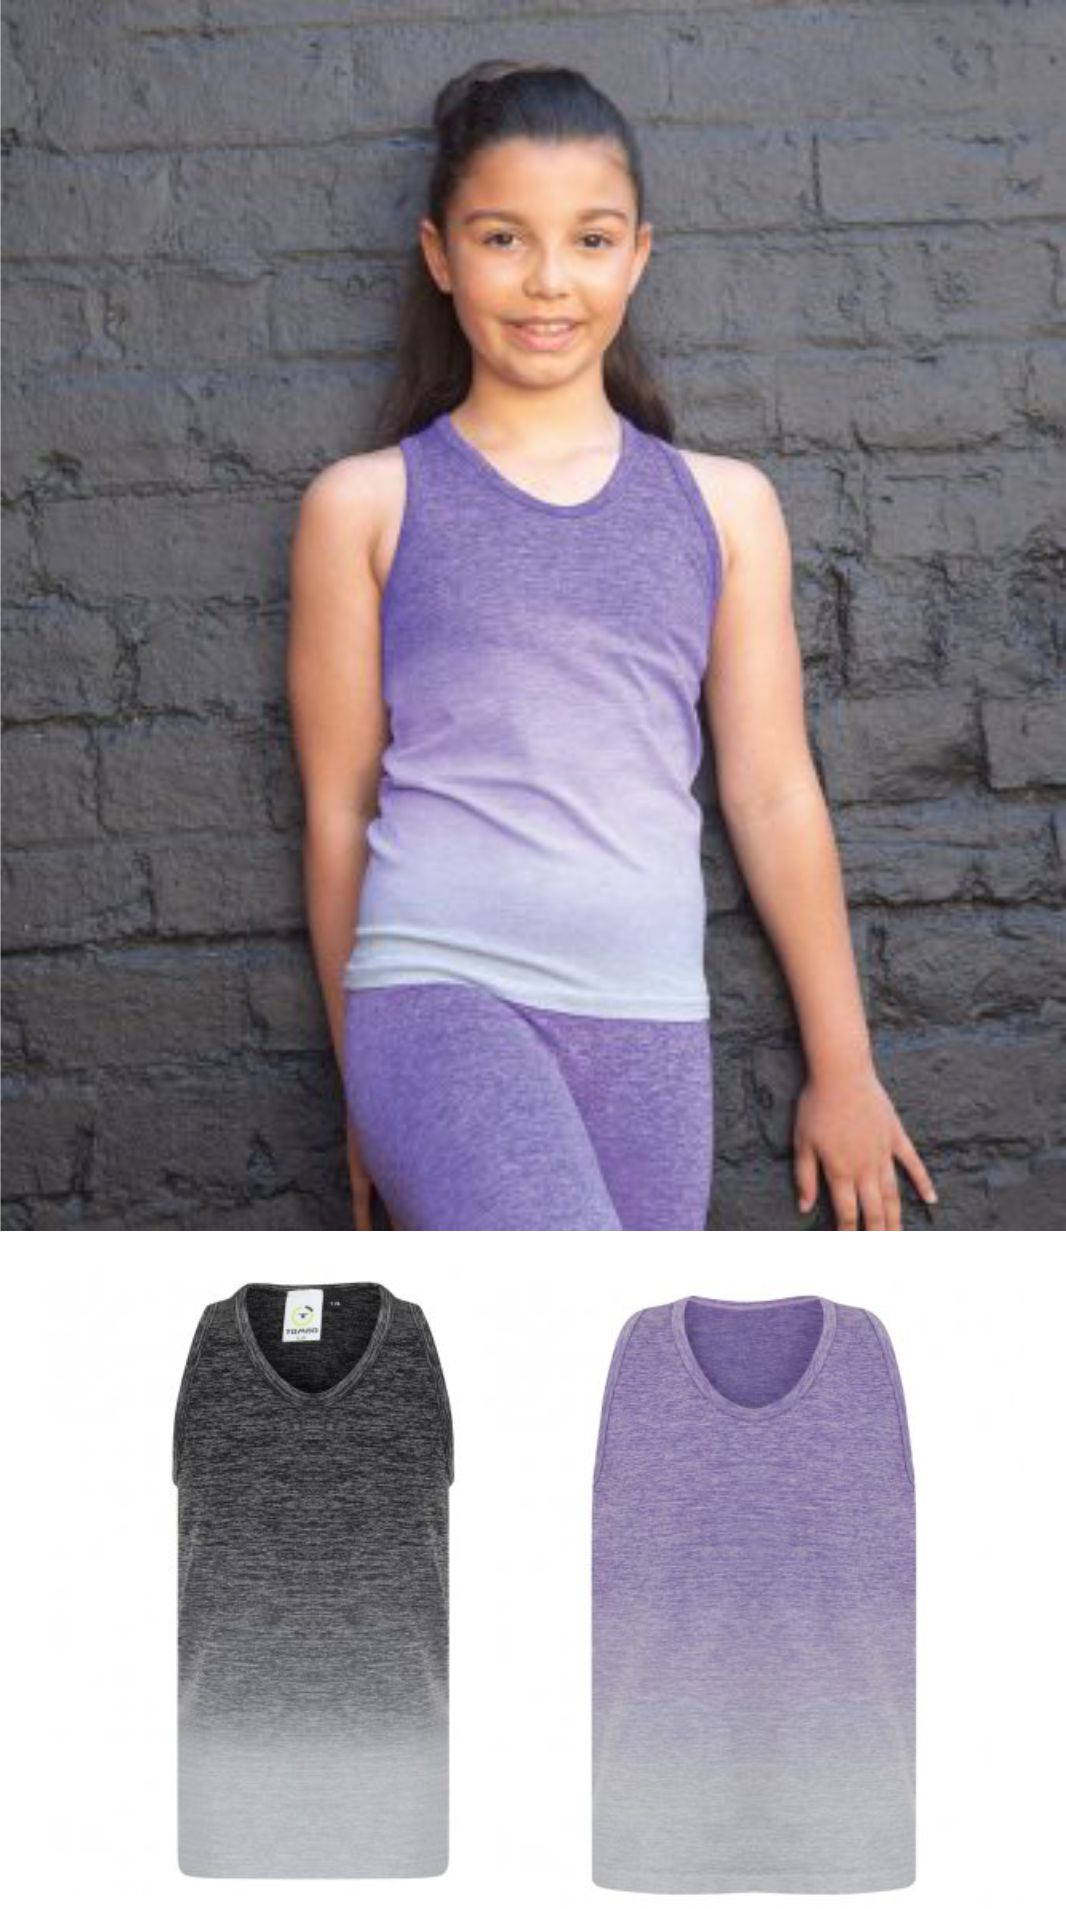 Tombo TL322 Kids Seamless Fade Out Vest